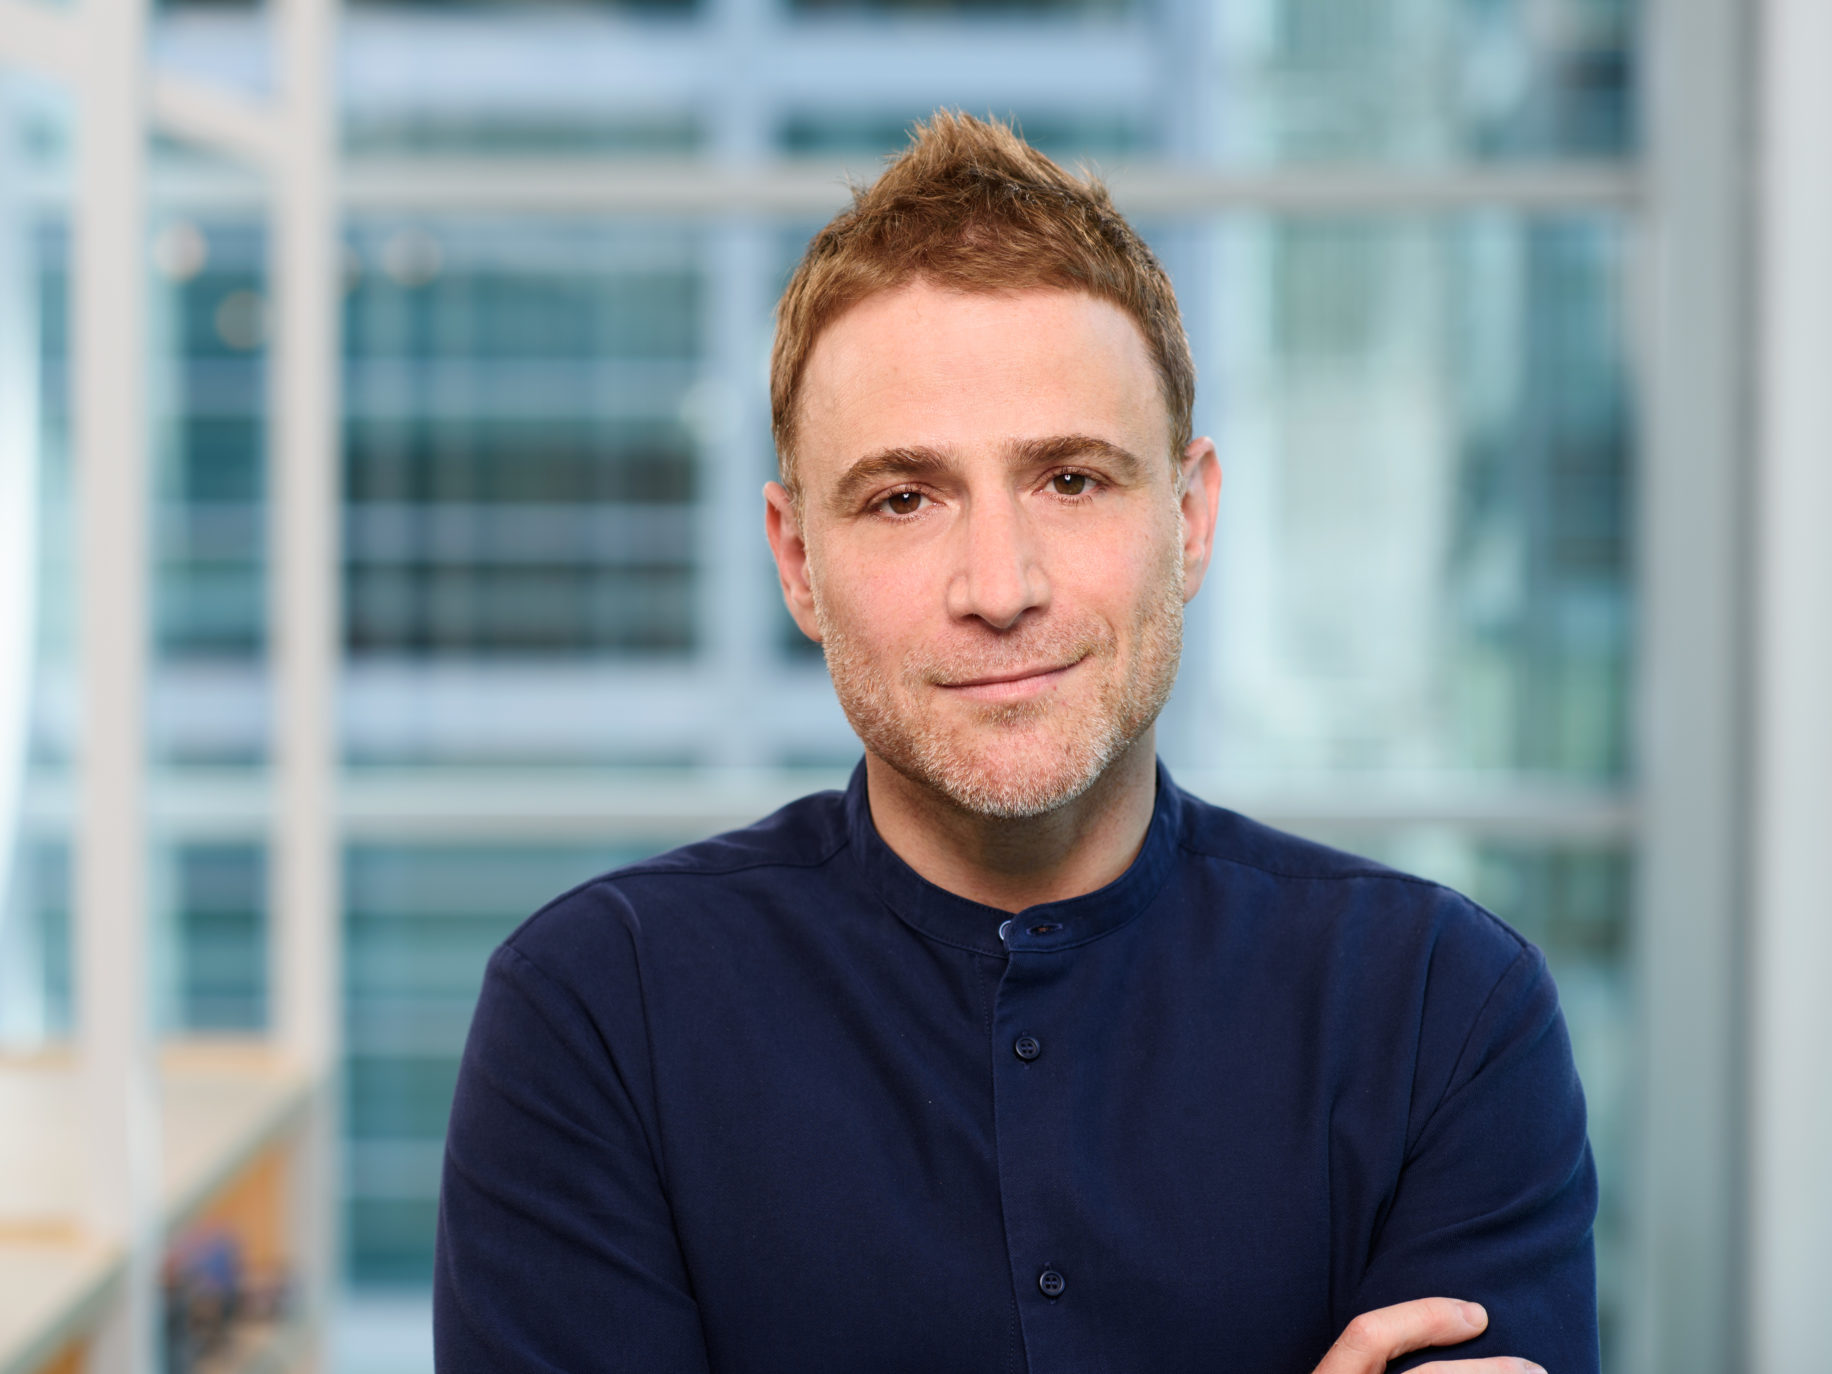 Slack warns investors about risk of possible retaliation from Microsoft over antitrust complaint